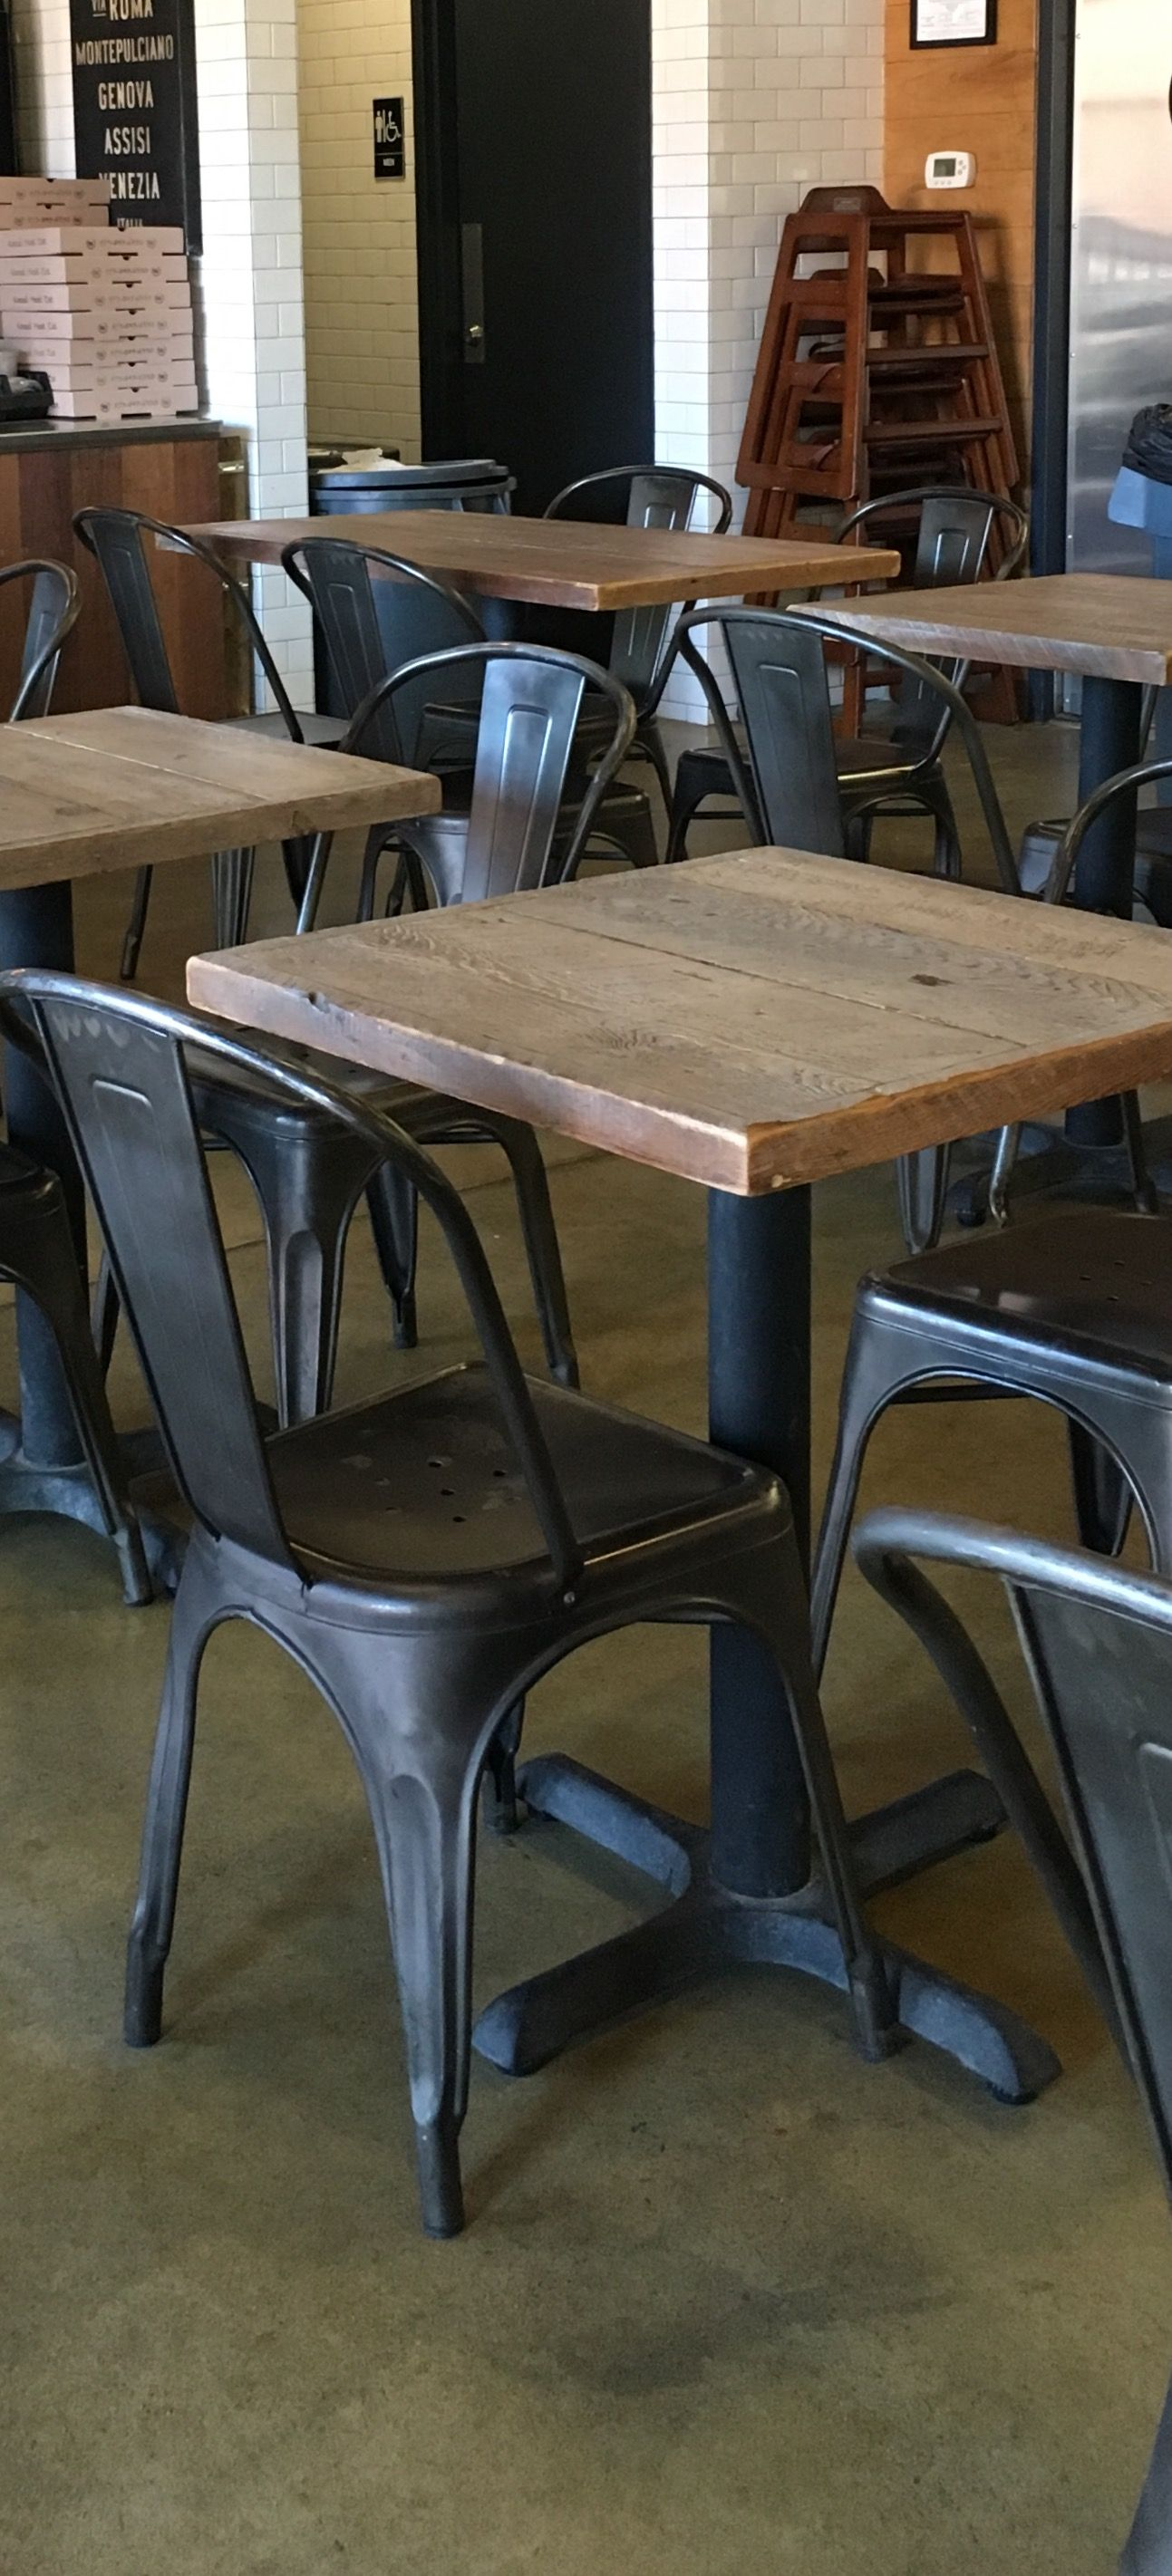 Reclaimed Wood From Nj Barns Turned Into Gorgeous Restaurant Tables